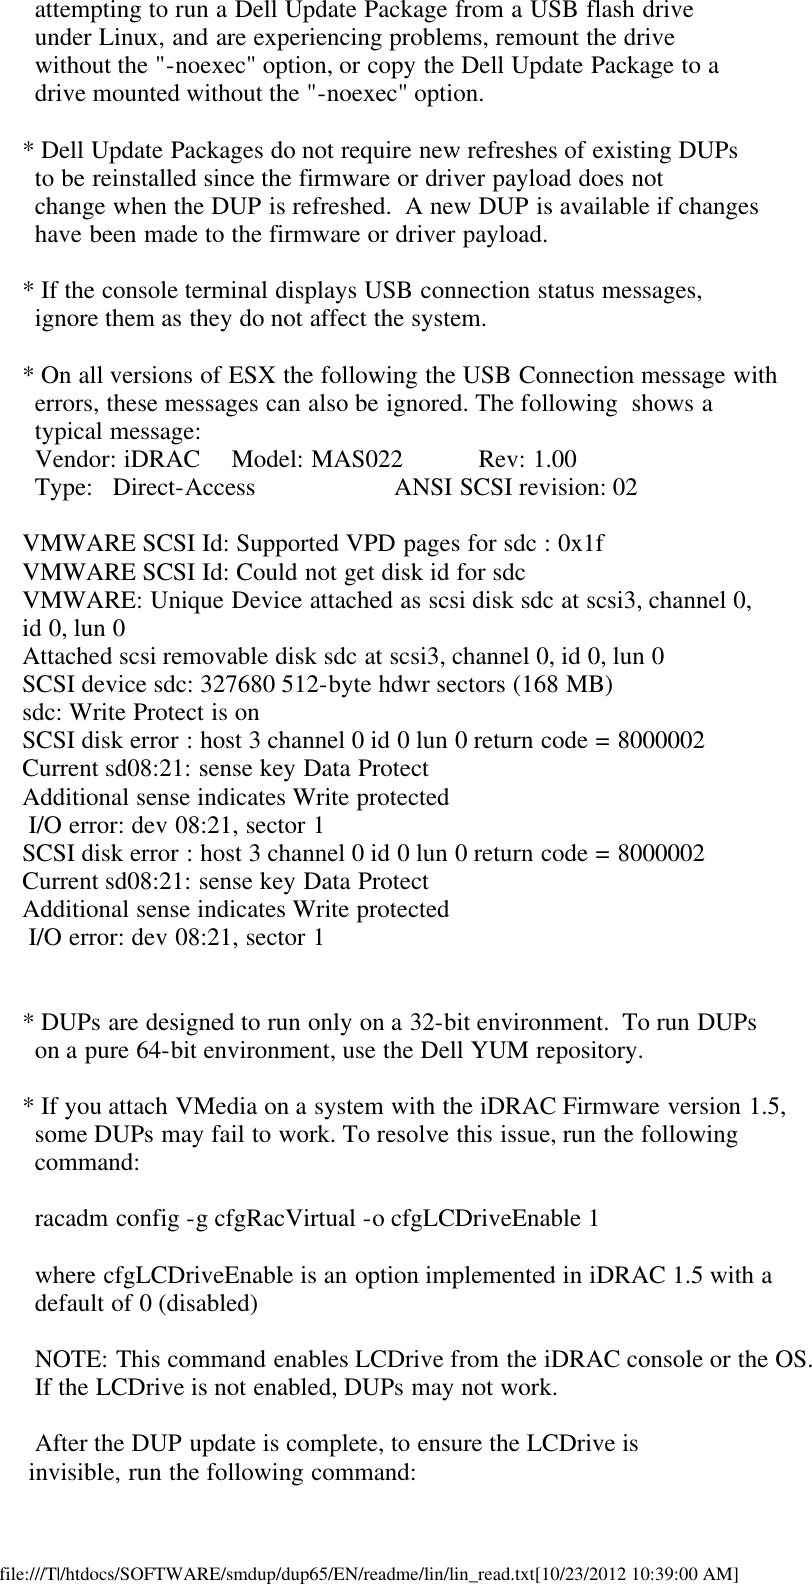 Dell Update Packages Version 6 5 Owners Manual 6.5 Readme For Linux